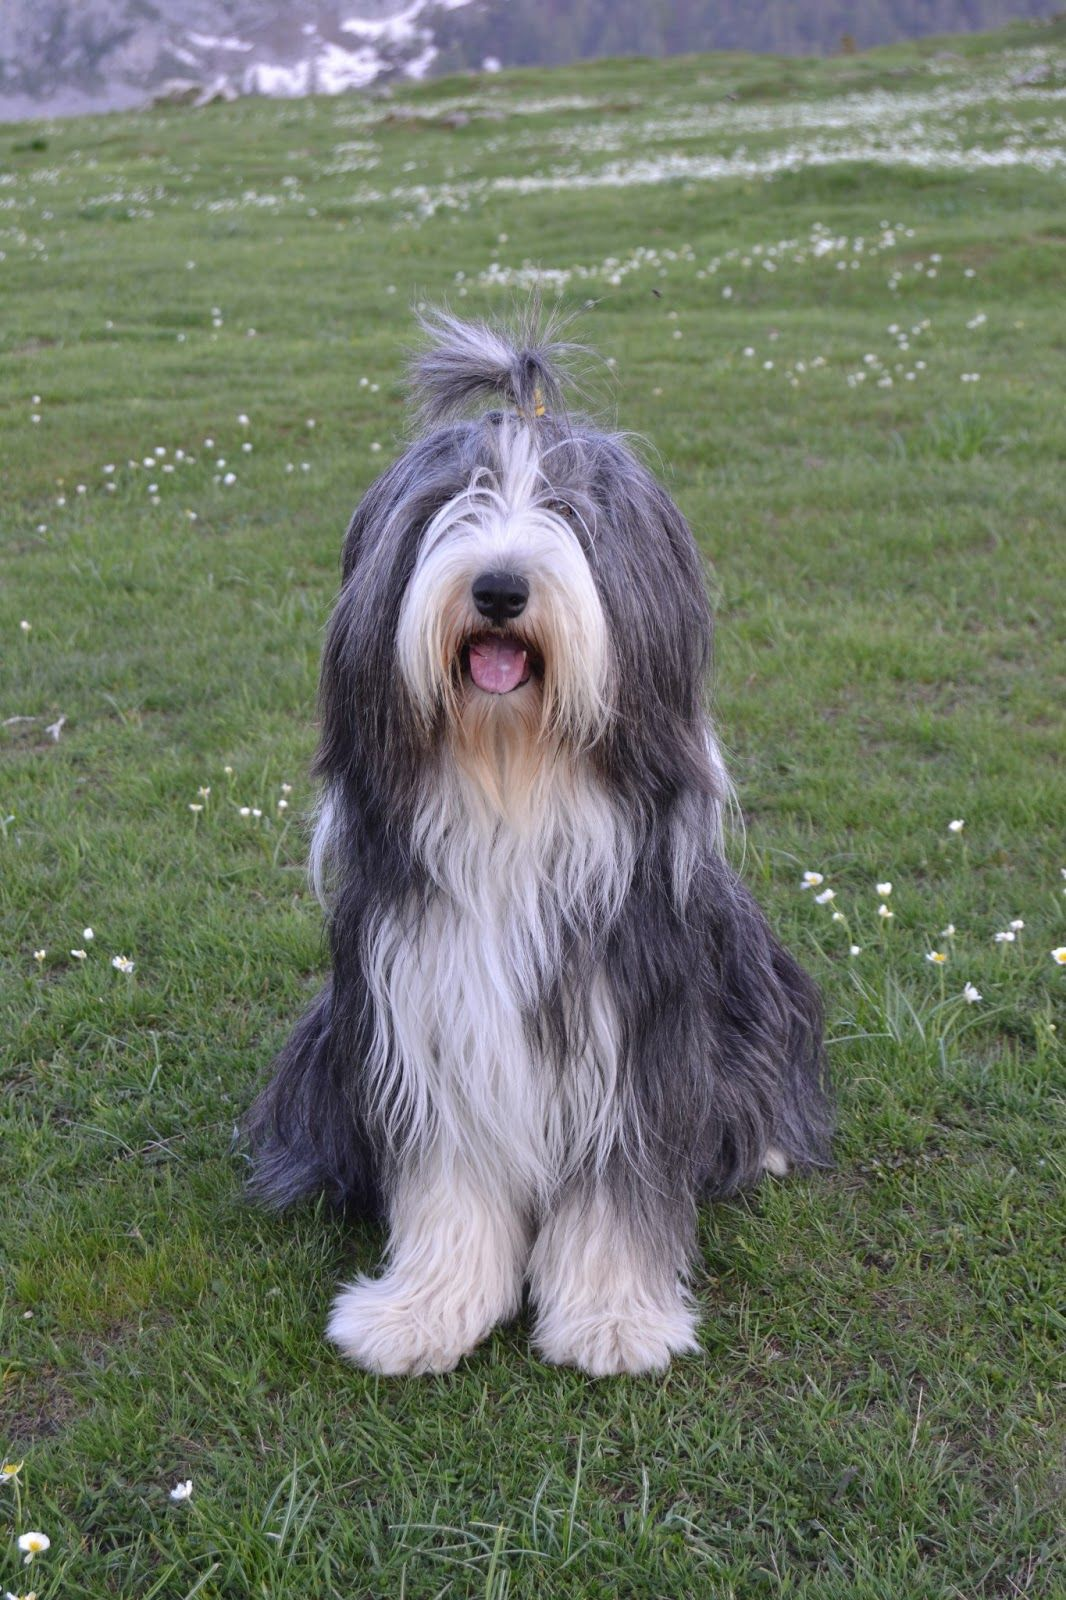 Nina Bearded Collie Dog Black And White Www Labandedesfaineantes Blogspot It Dog Bearding Bearded Collie Collie